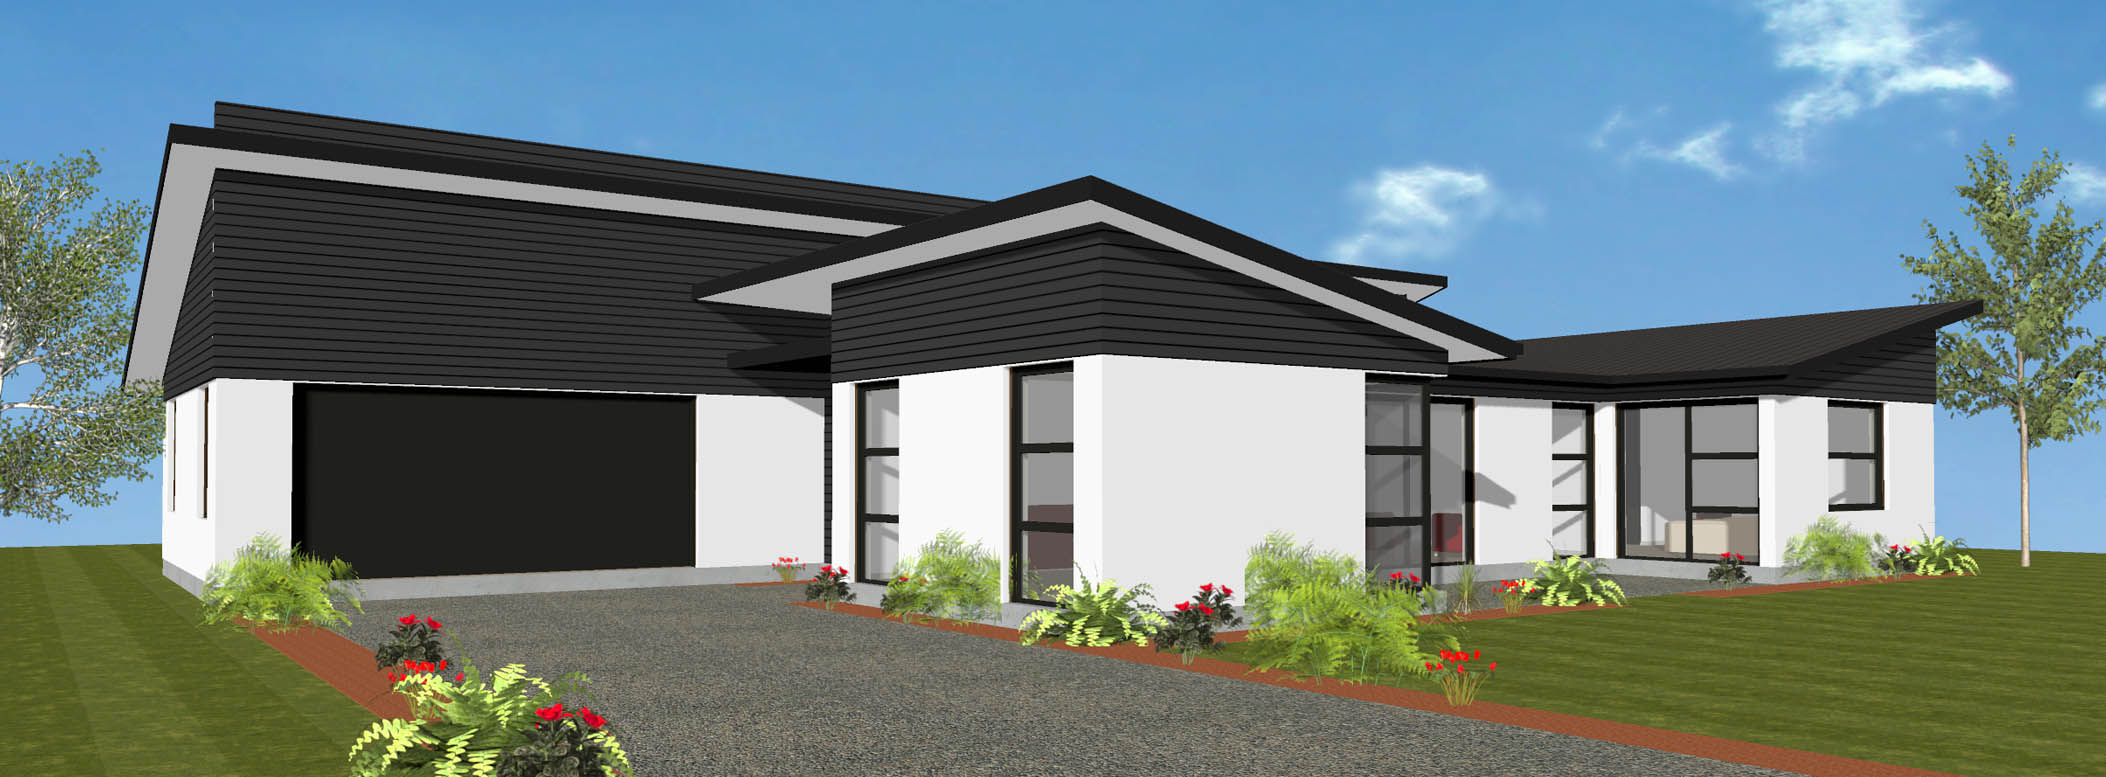 Avonmore New House Plan And Design Wellington Kapiti